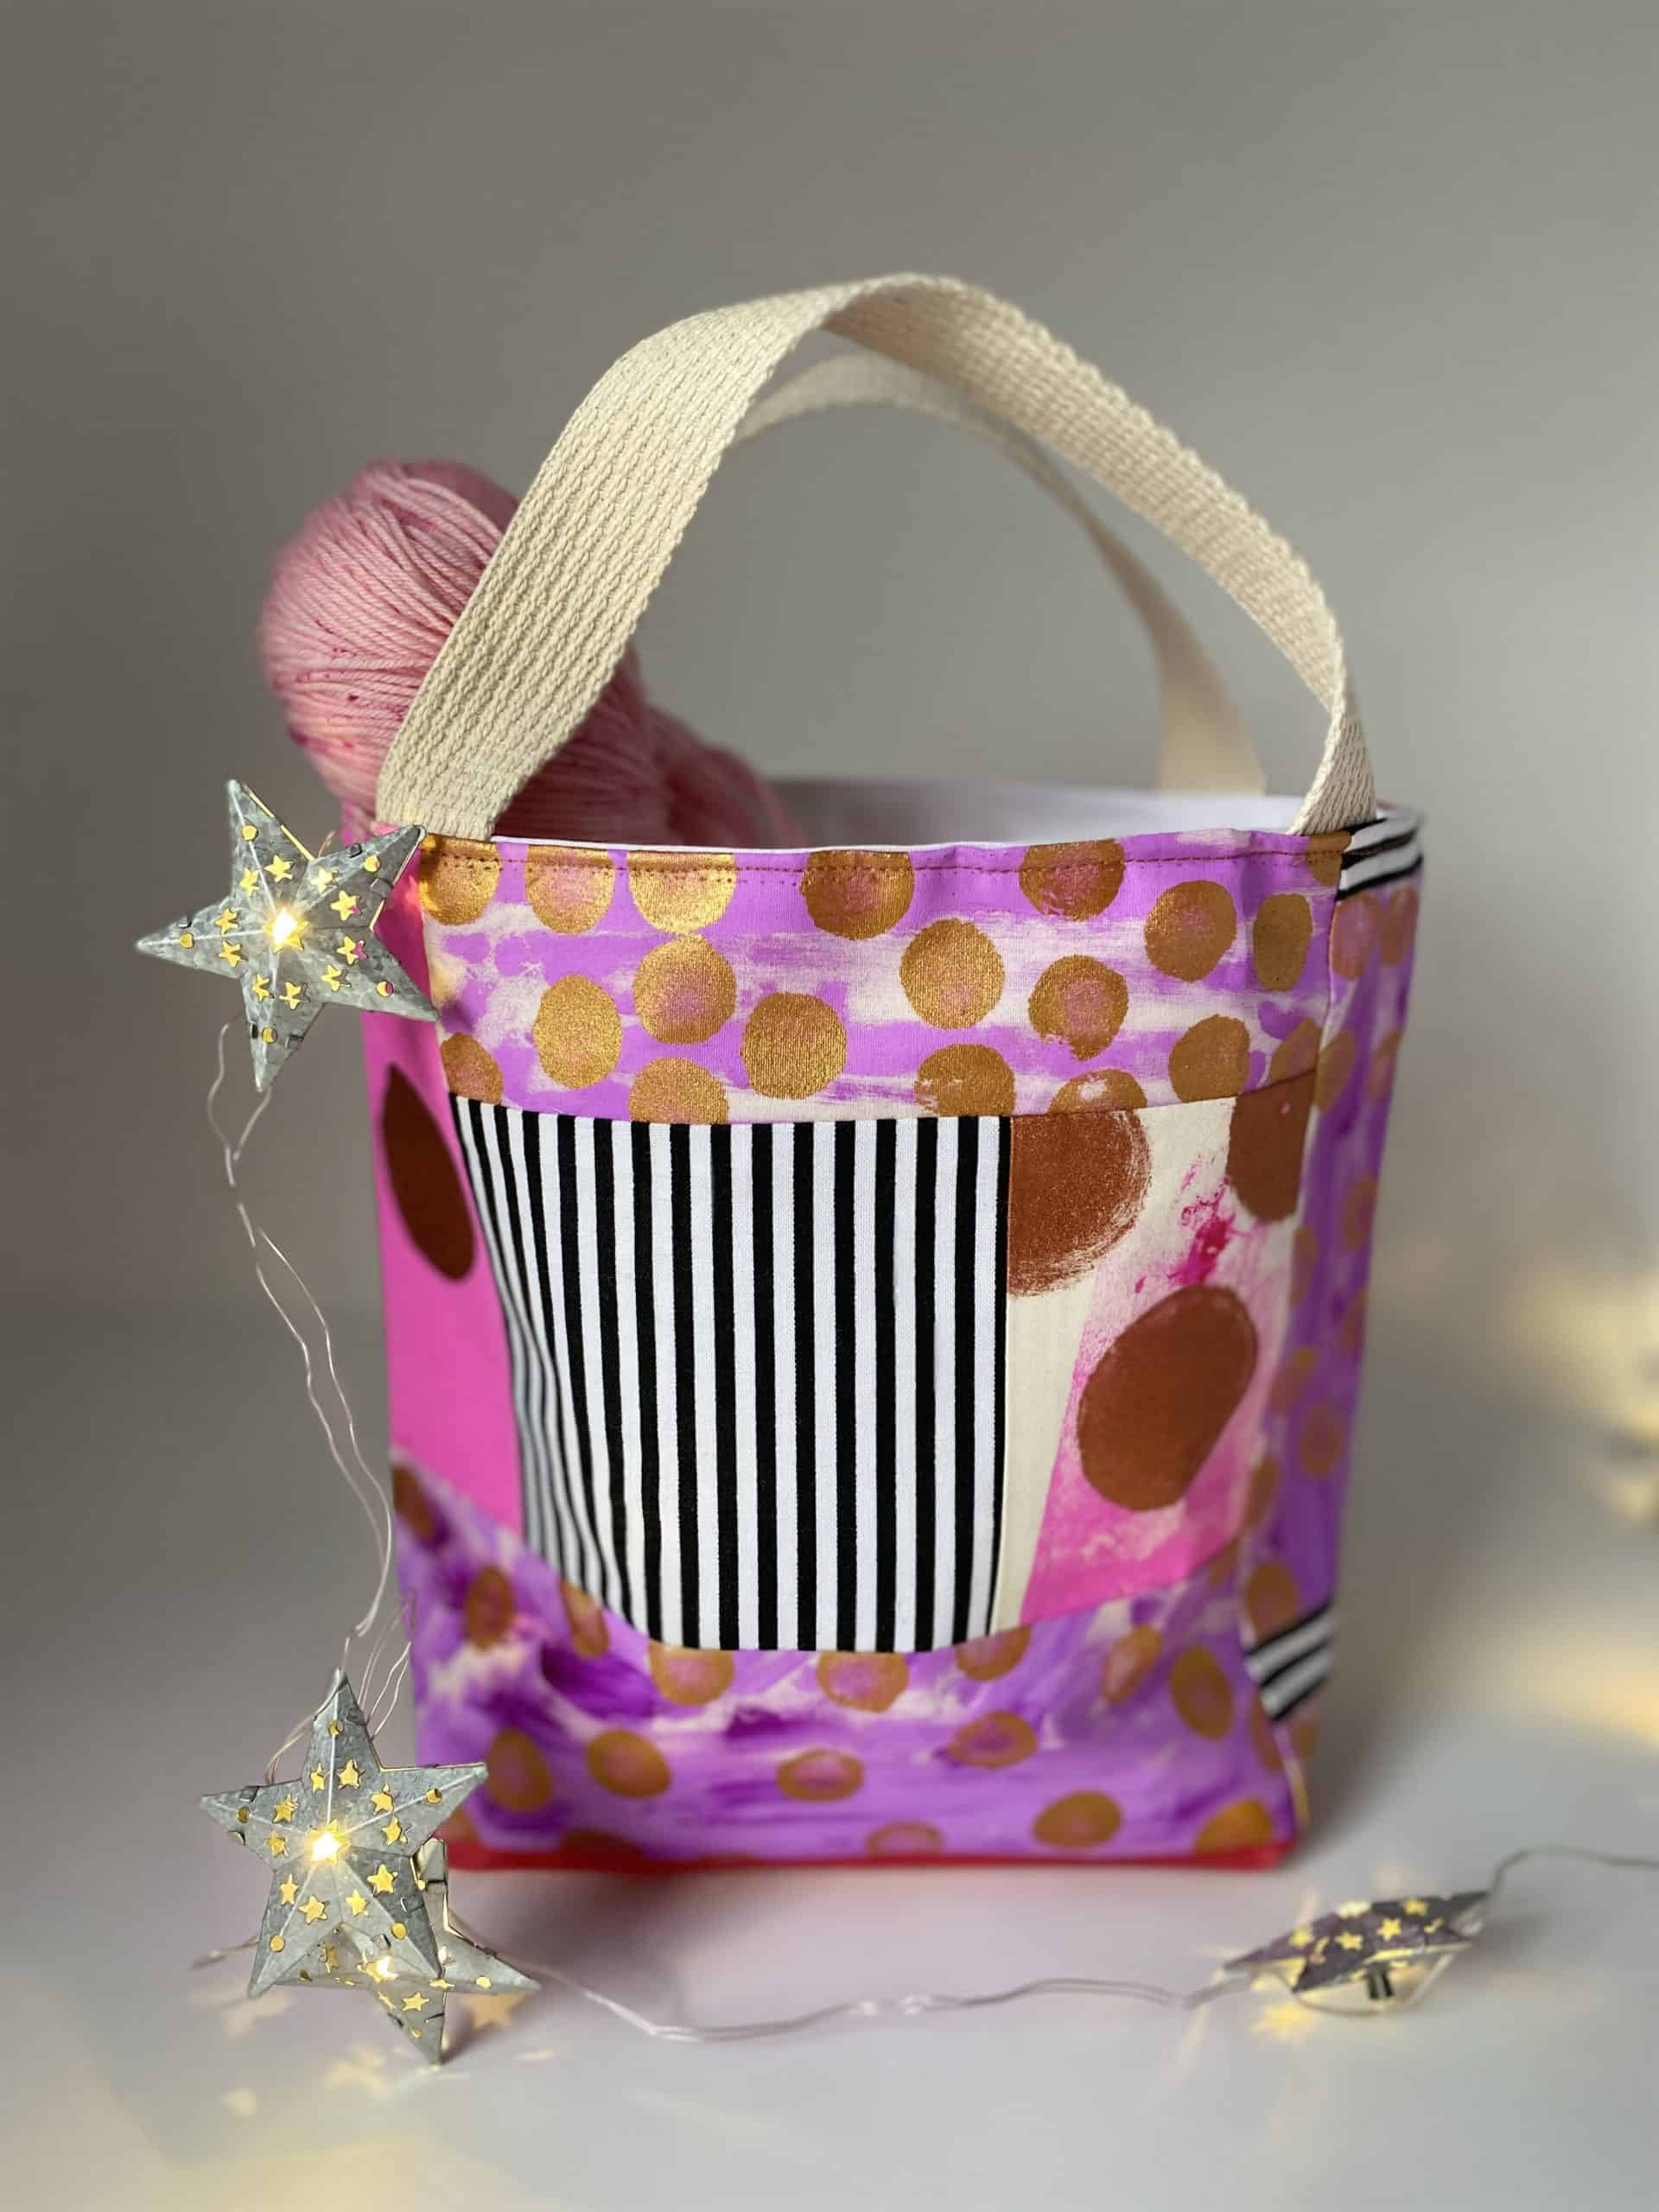 A pink bag with gold dots and a black and white striped p<a href=